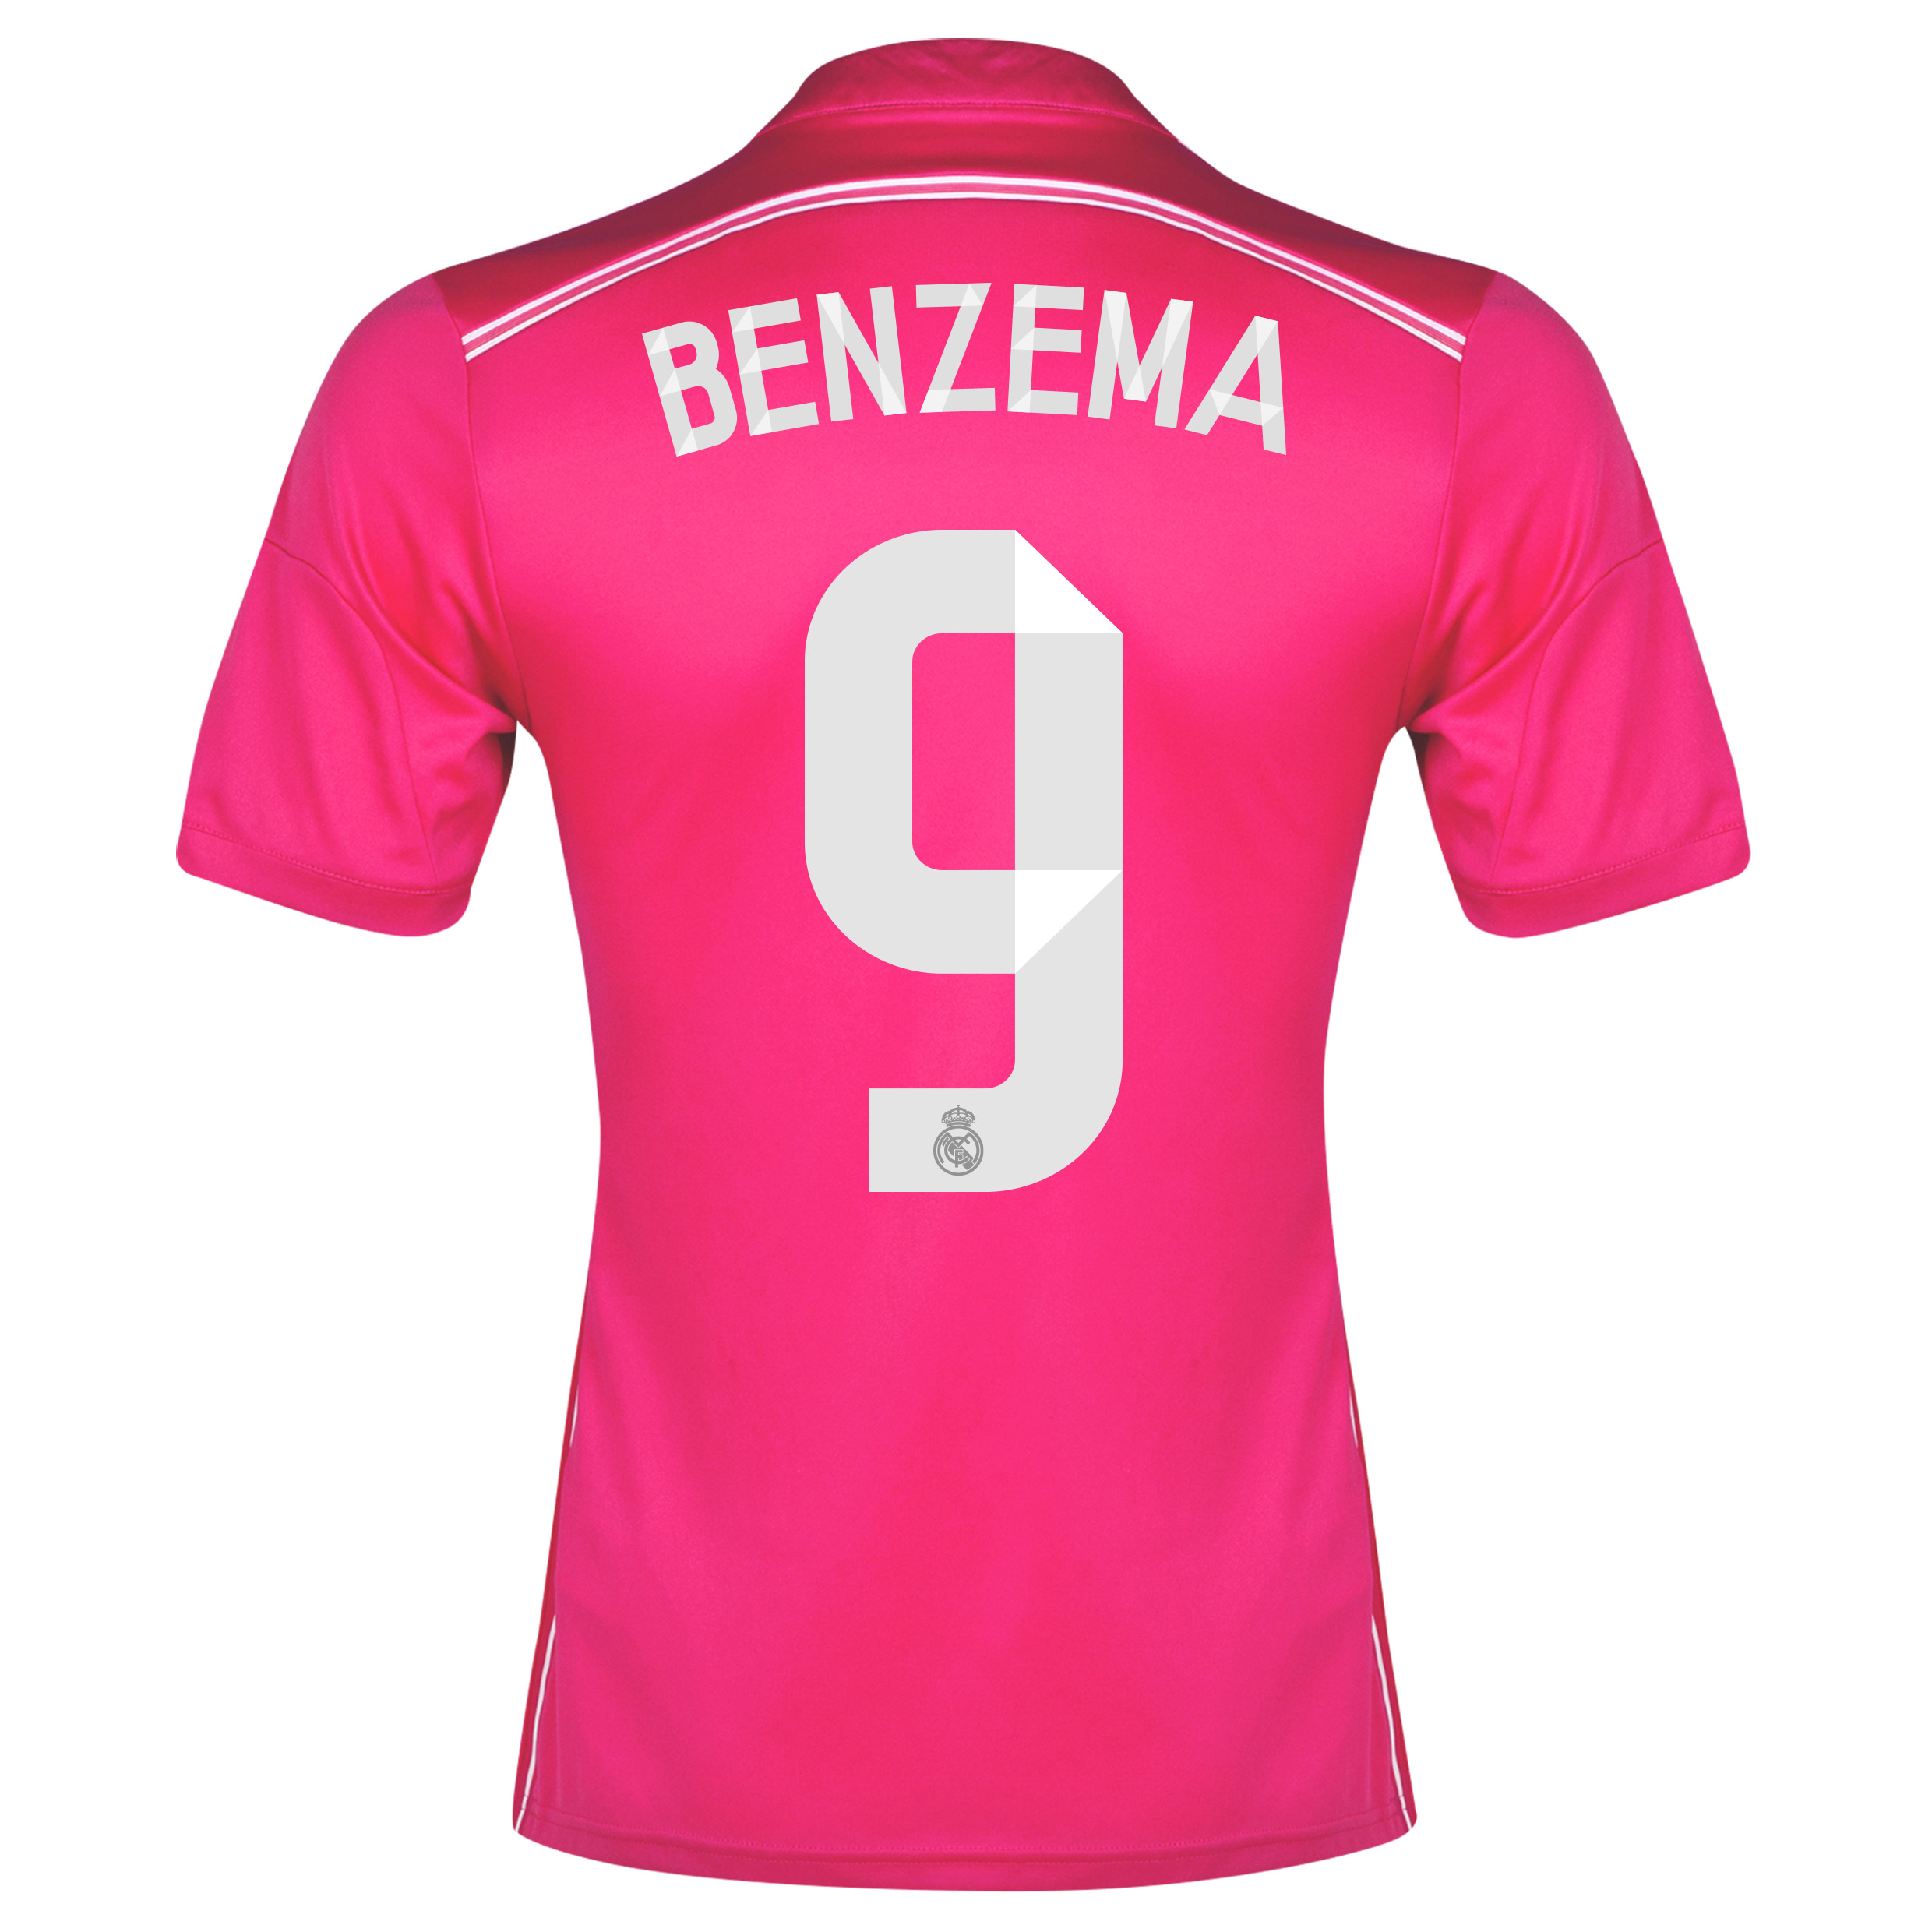 Real Madrid Away Shirt 2014/15 with Benzema 9 printing